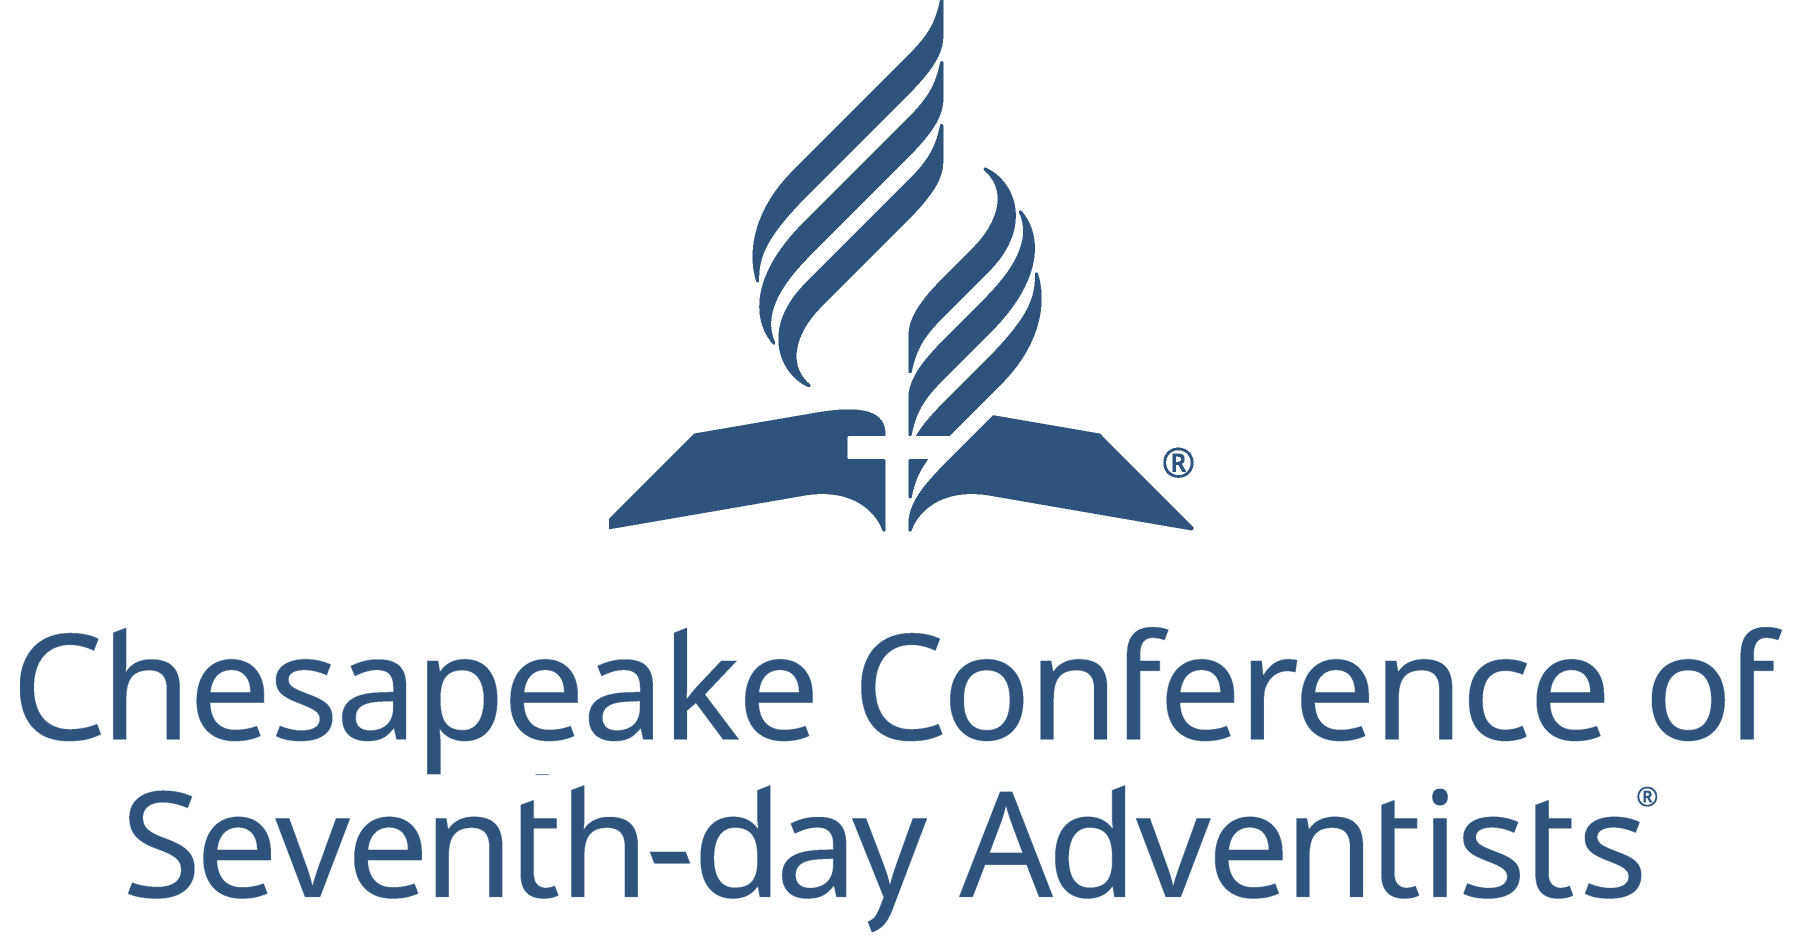 Chesapeake Conference of Seventh-day Adventists